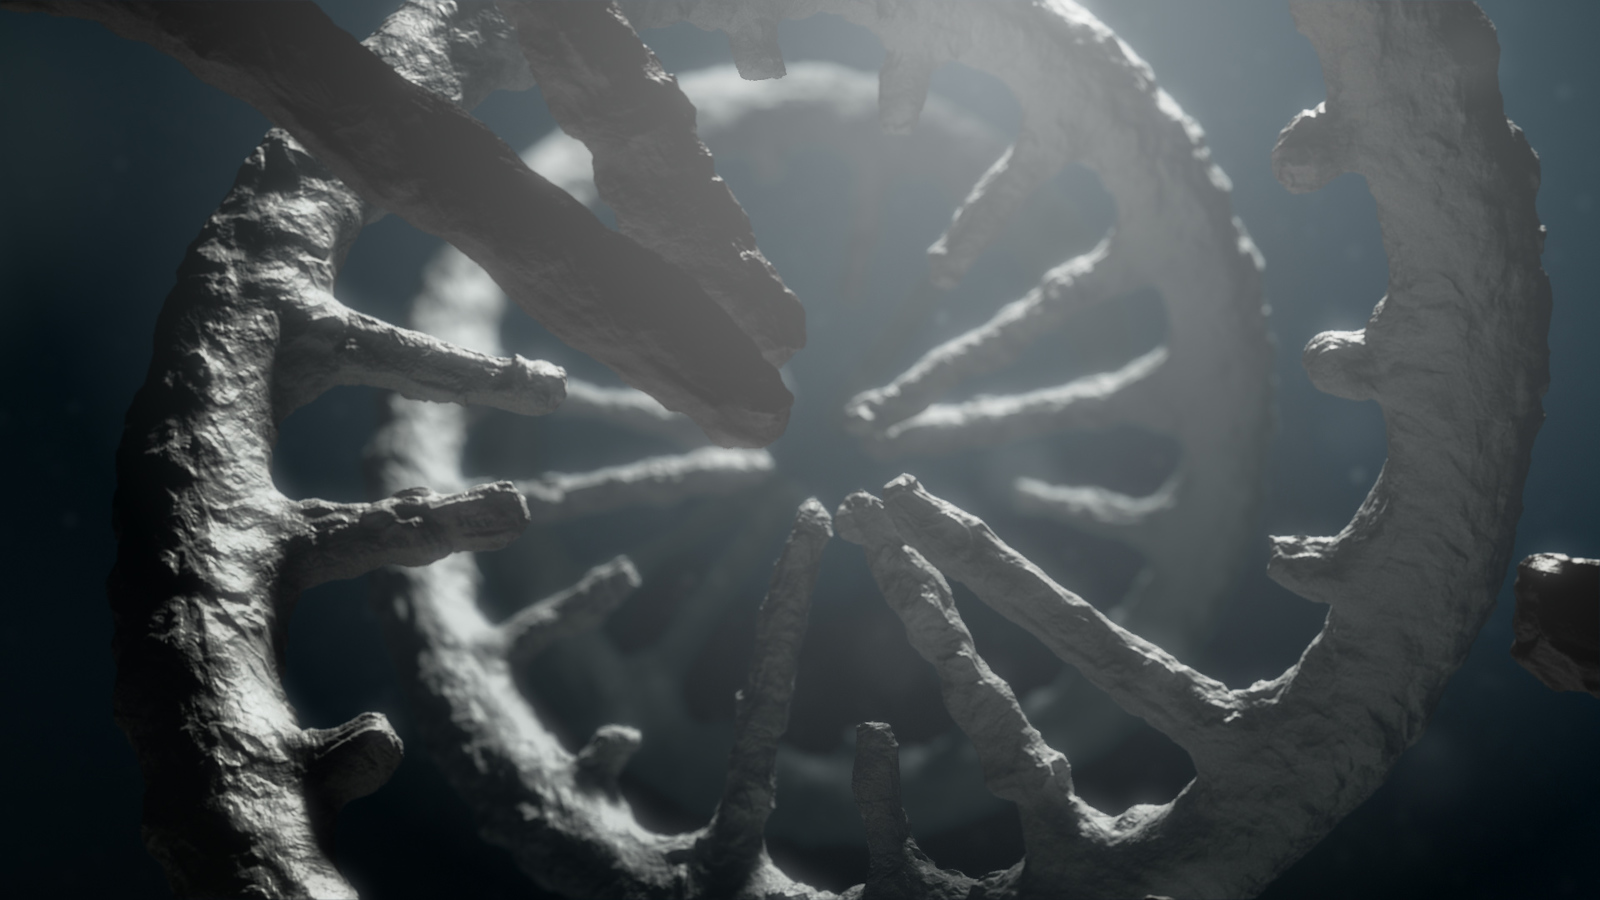 Render of stone like spiral helix structure from healthcare animation